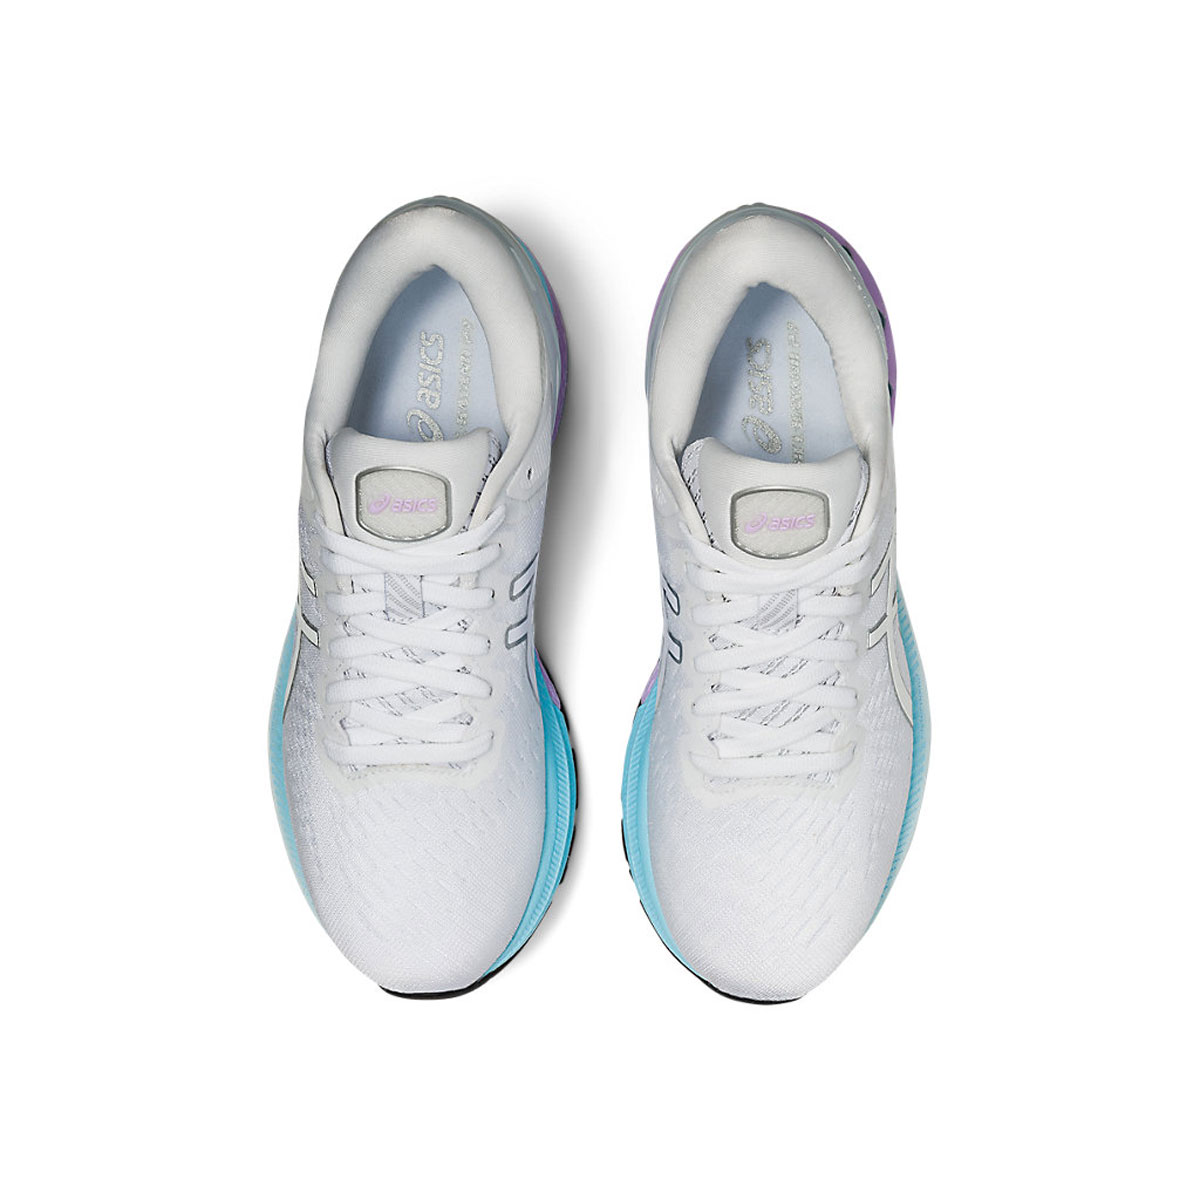 Women's Asics GEL-Kayano 27 Running Shoe - Color: White/Pure Silv (Regular Width) - Size: 5, White/Pure Silver, large, image 6